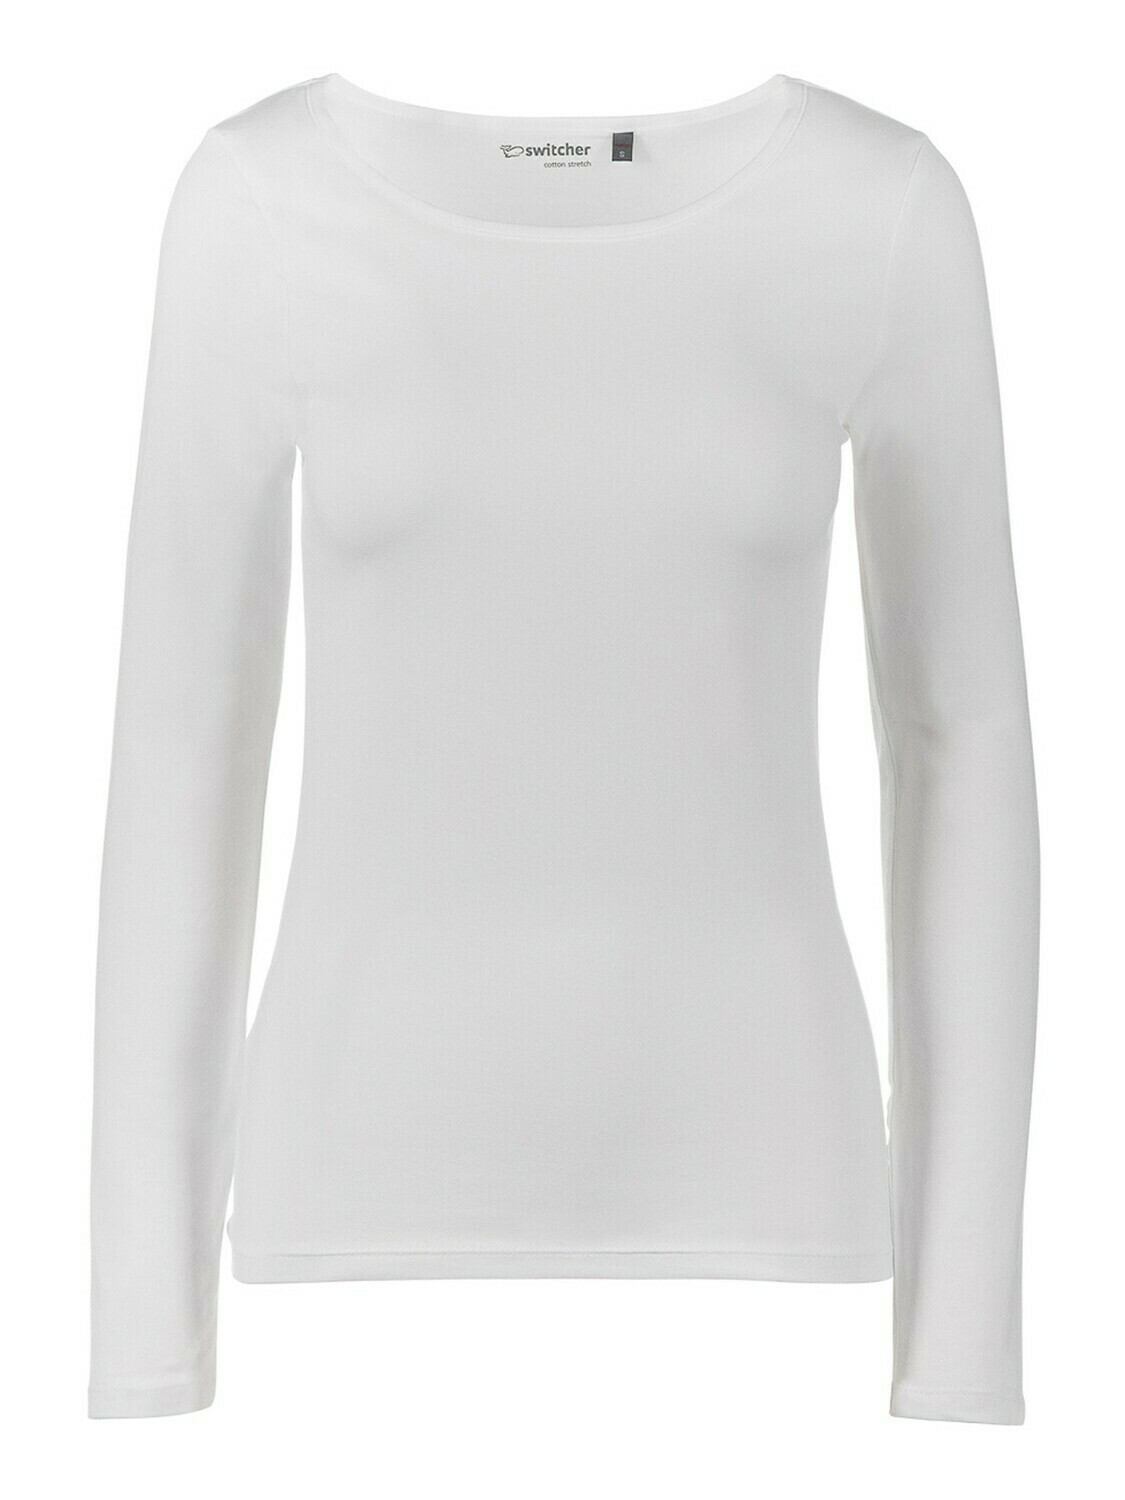 Damen langarm stretch T-Shirt Switcher Liliane